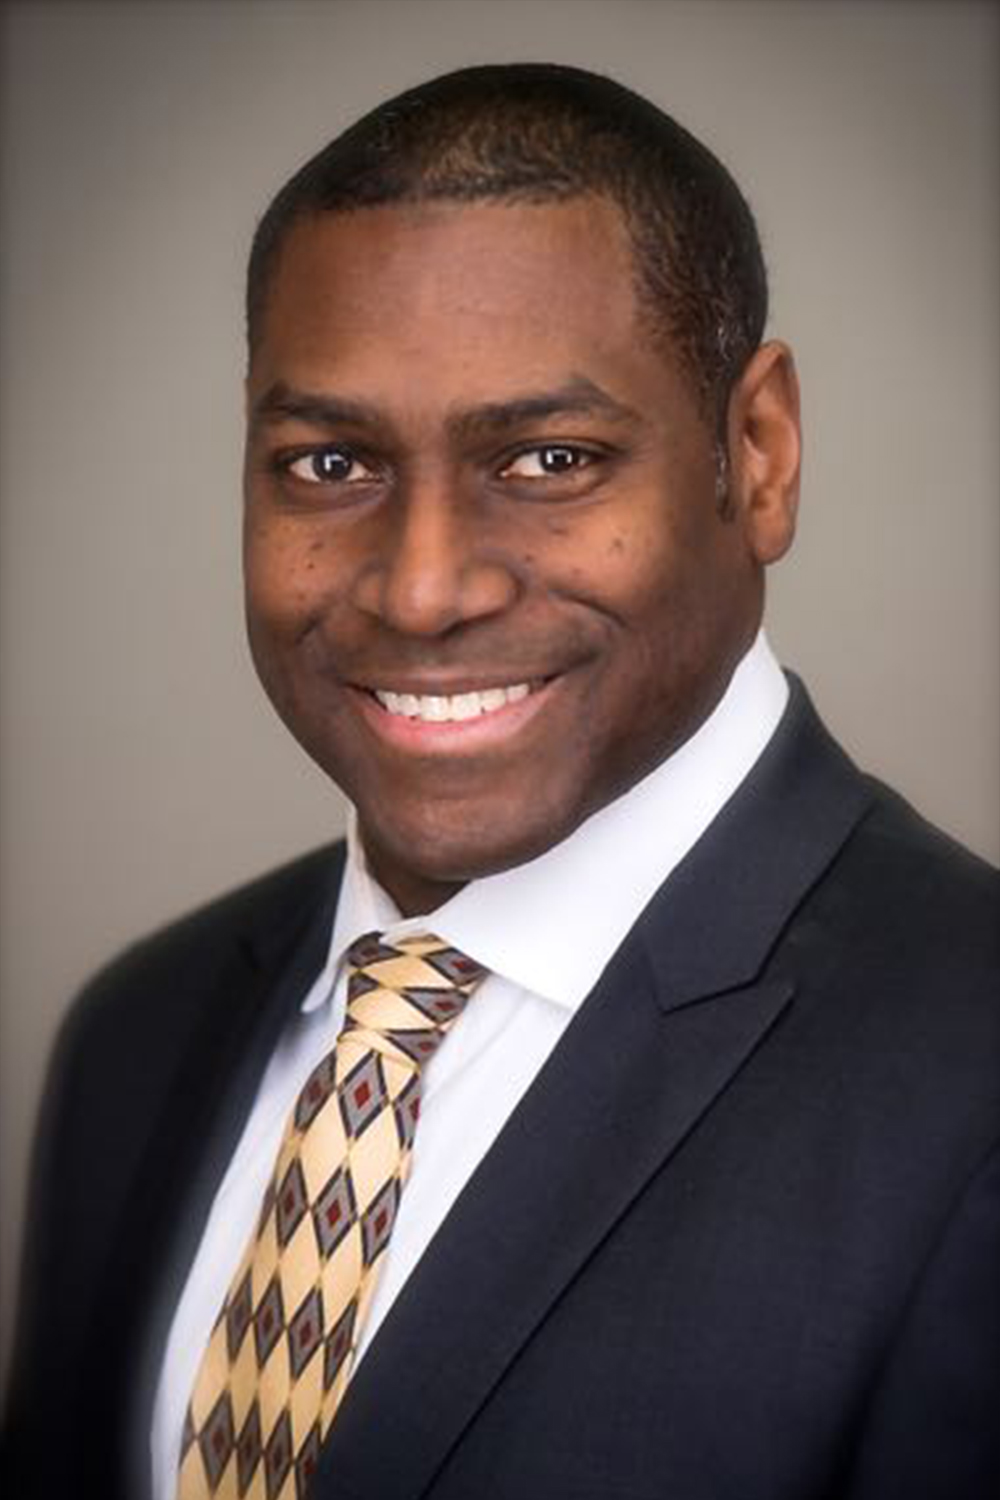 Deon Harmon, DDH Tax, Sales Tax Consultants and Experts